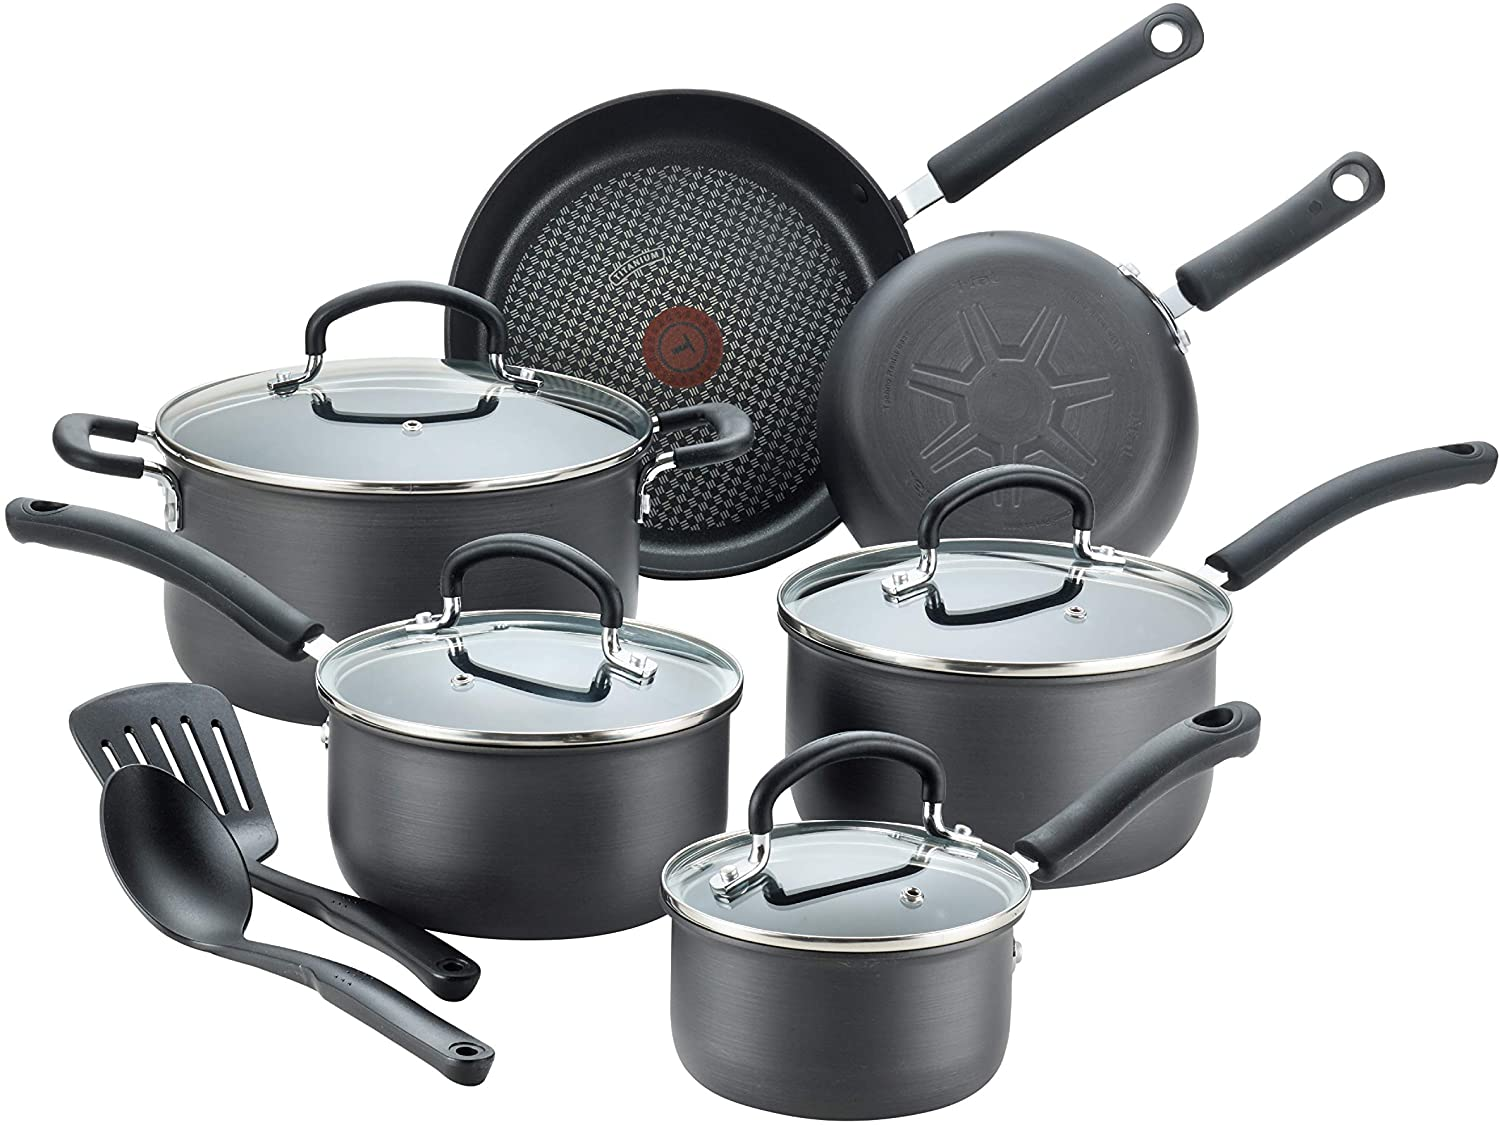 T-fal E765SC Hard Anodized Cookware for Glass Top Stoves Image